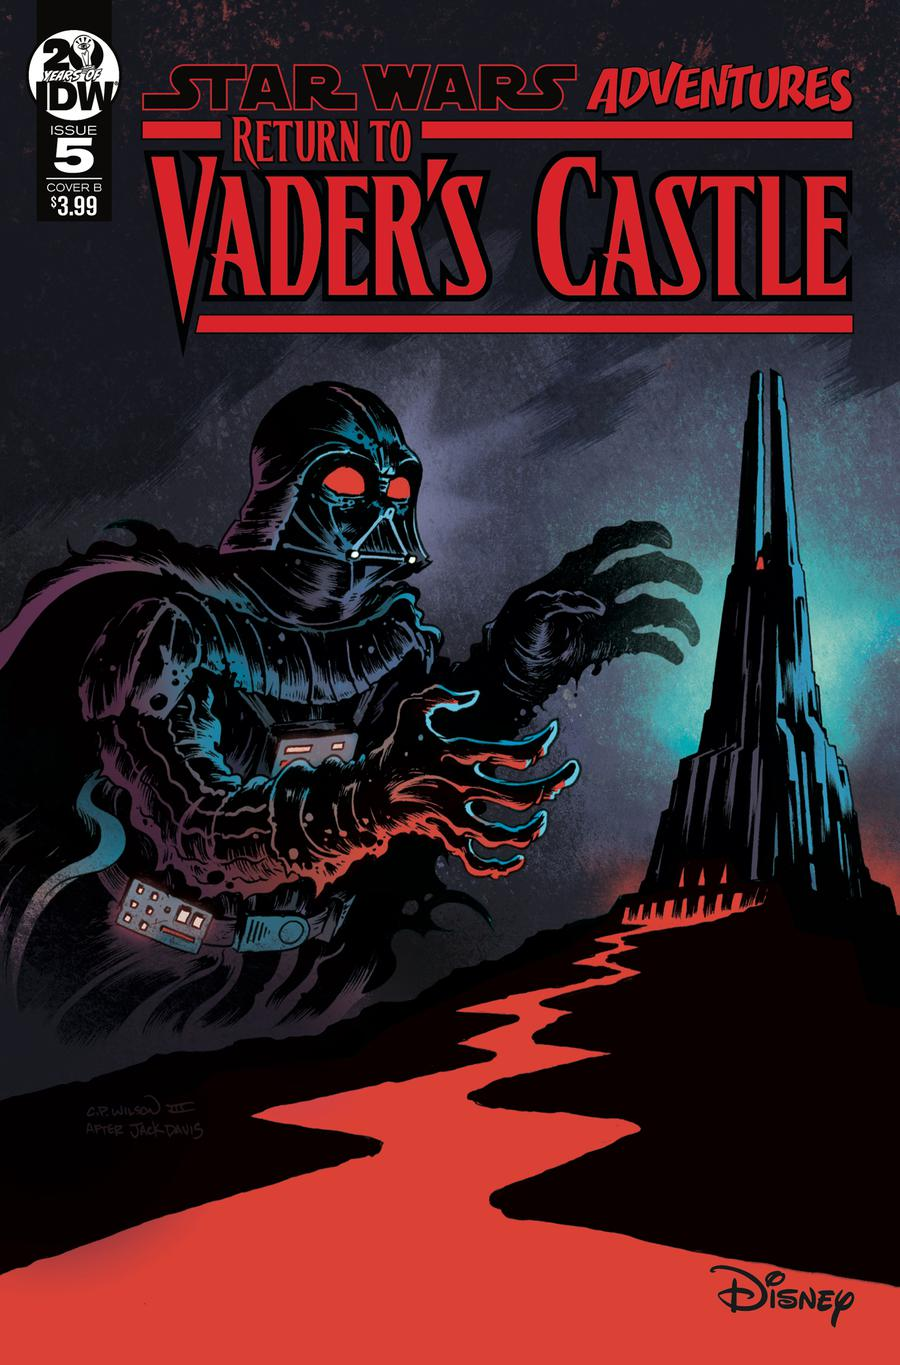 Star Wars Adventures Return To Vaders Castle #5 Cover B Variant Charles Paul Wilson III Cover